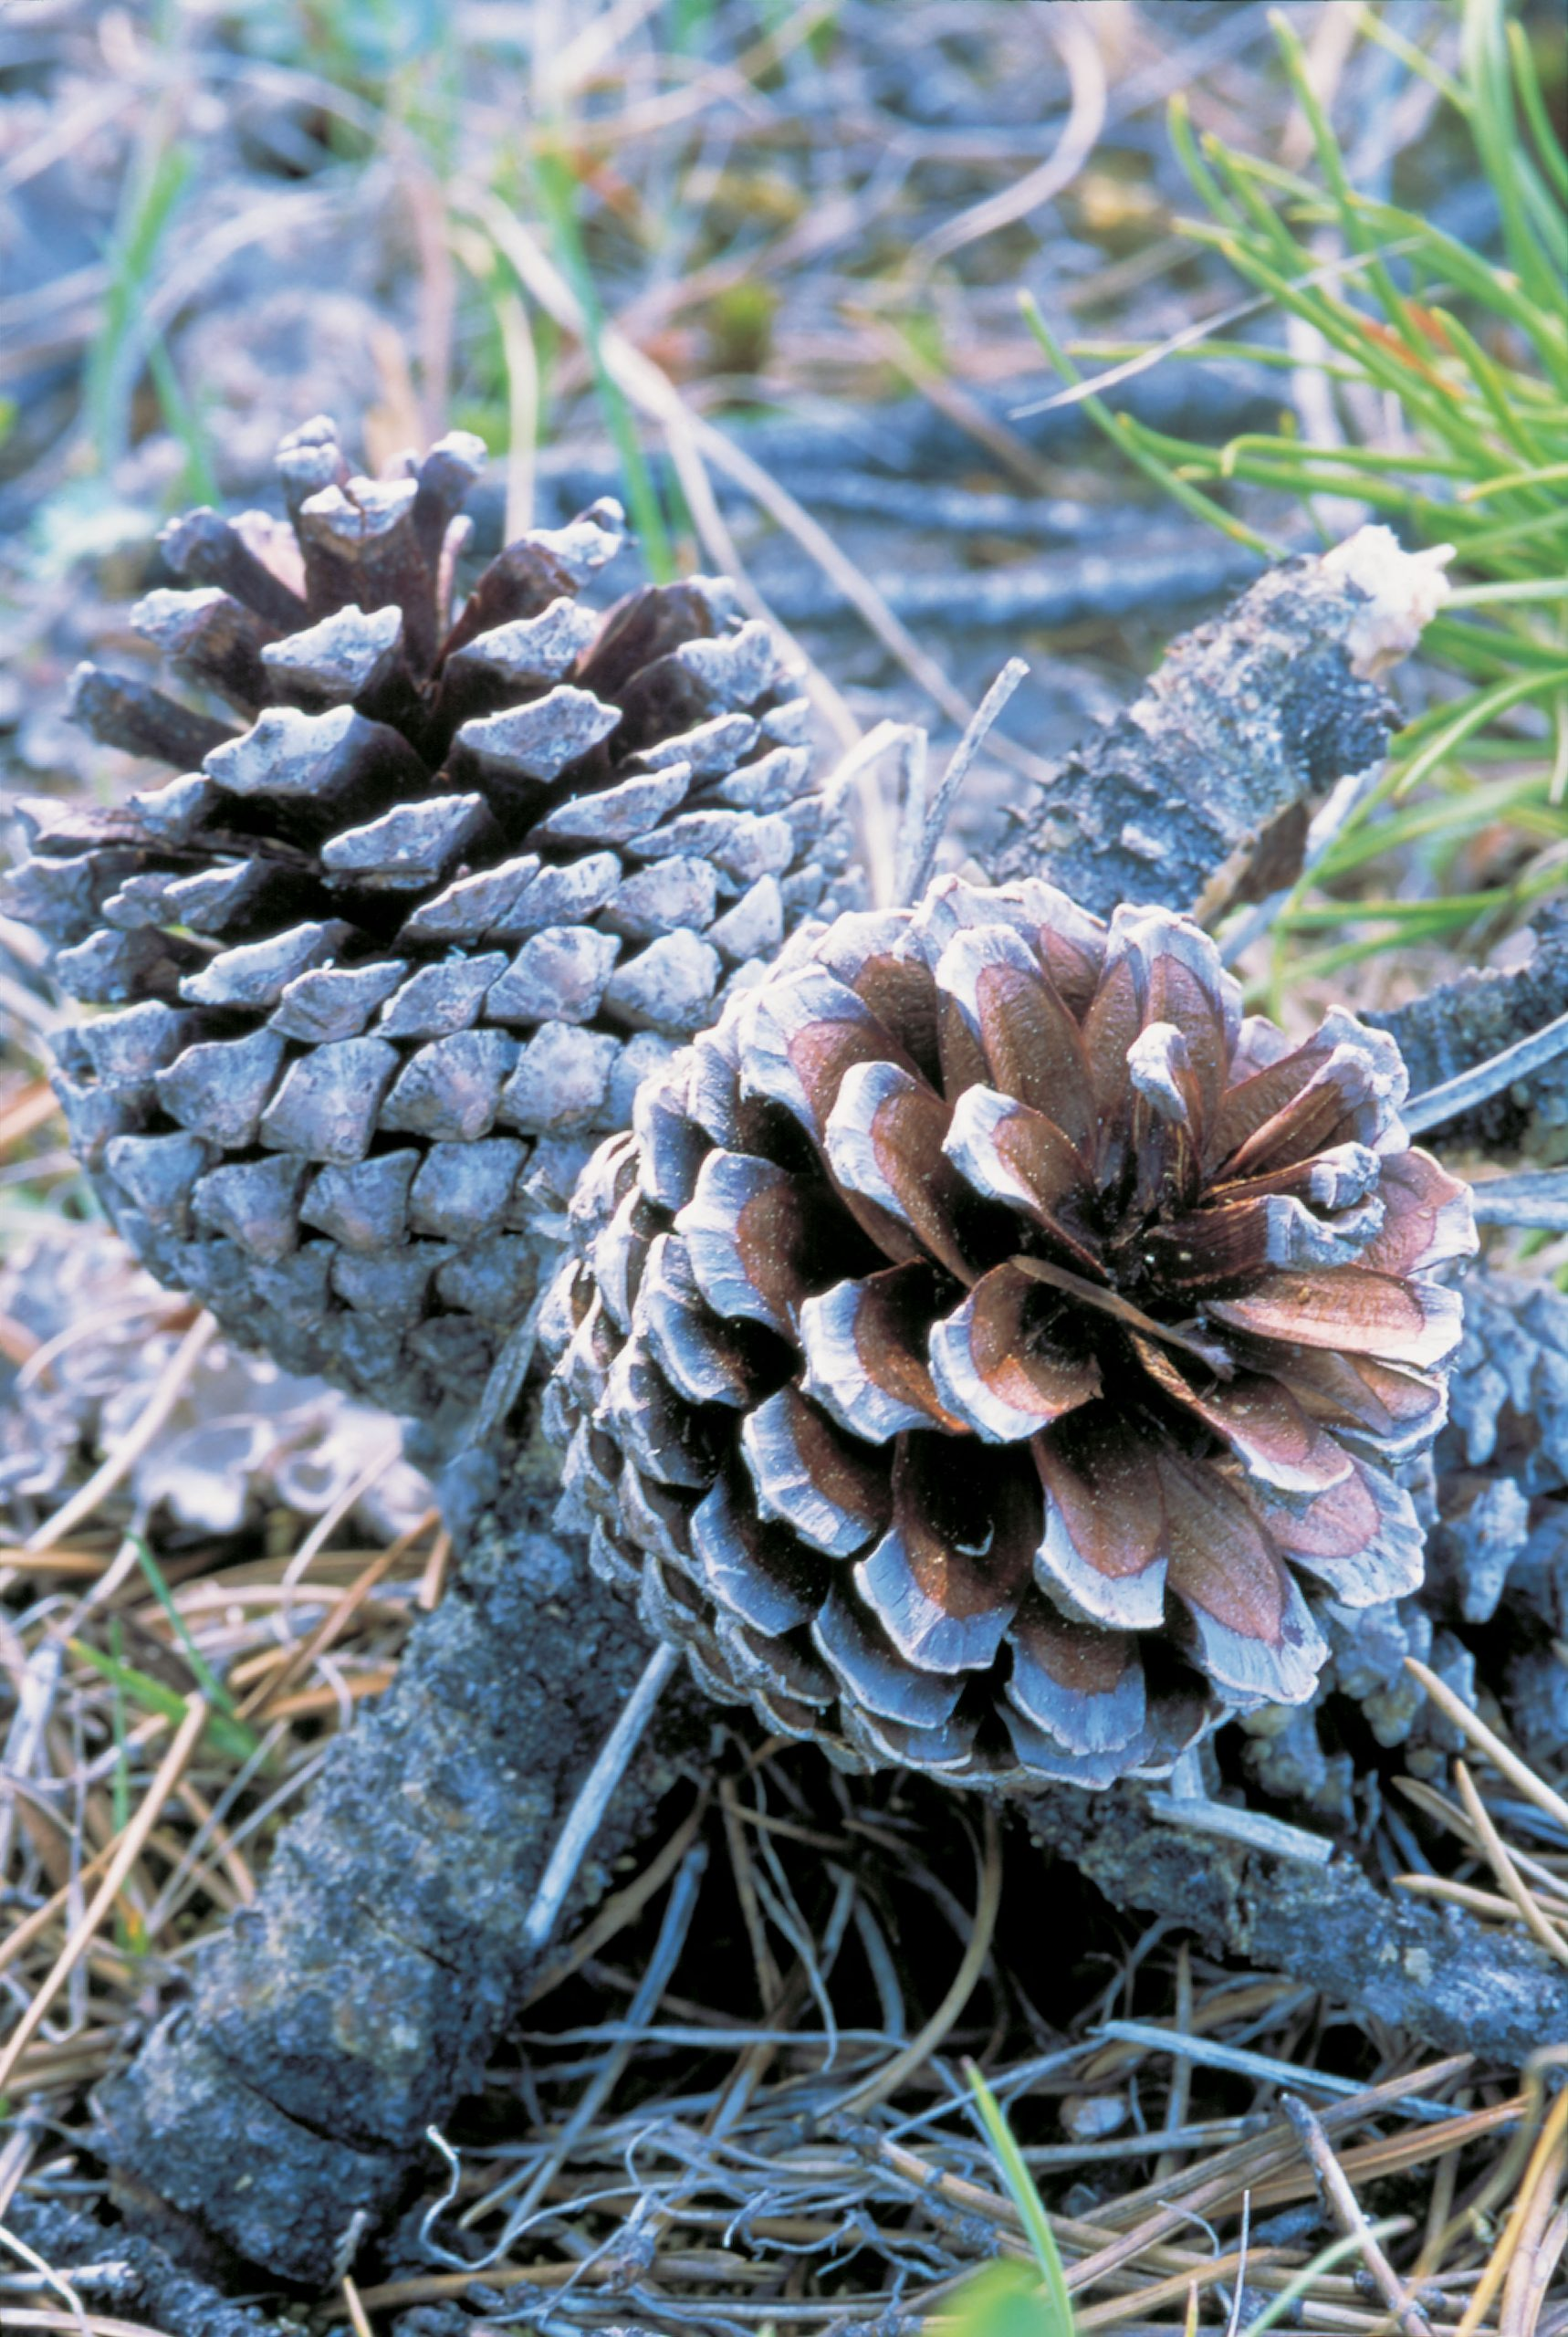 Close up of pine cones on the ground